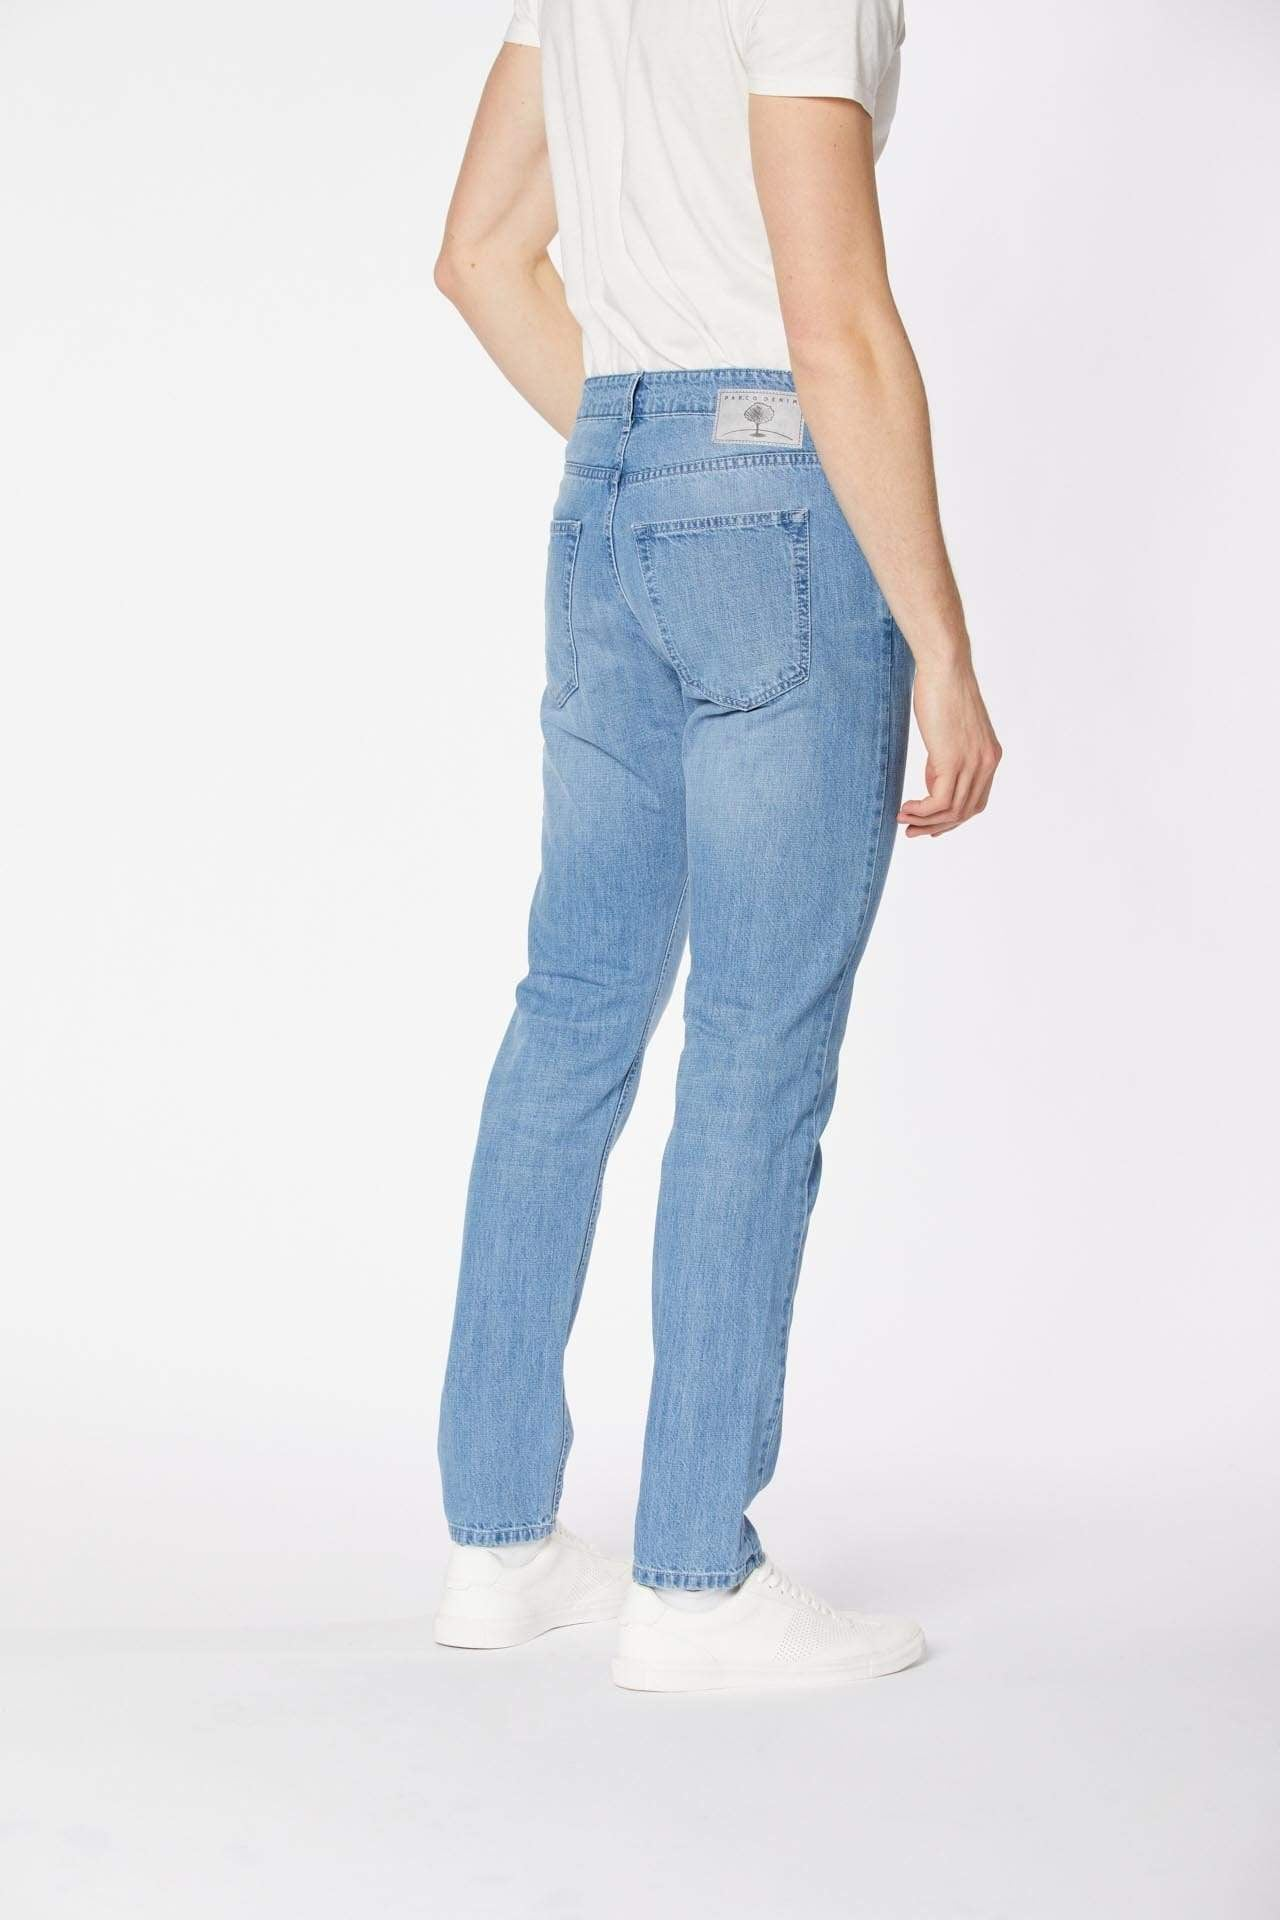 Par.co DENIM Man Gelso Loose Jeans sustainable fashion ethical fashion